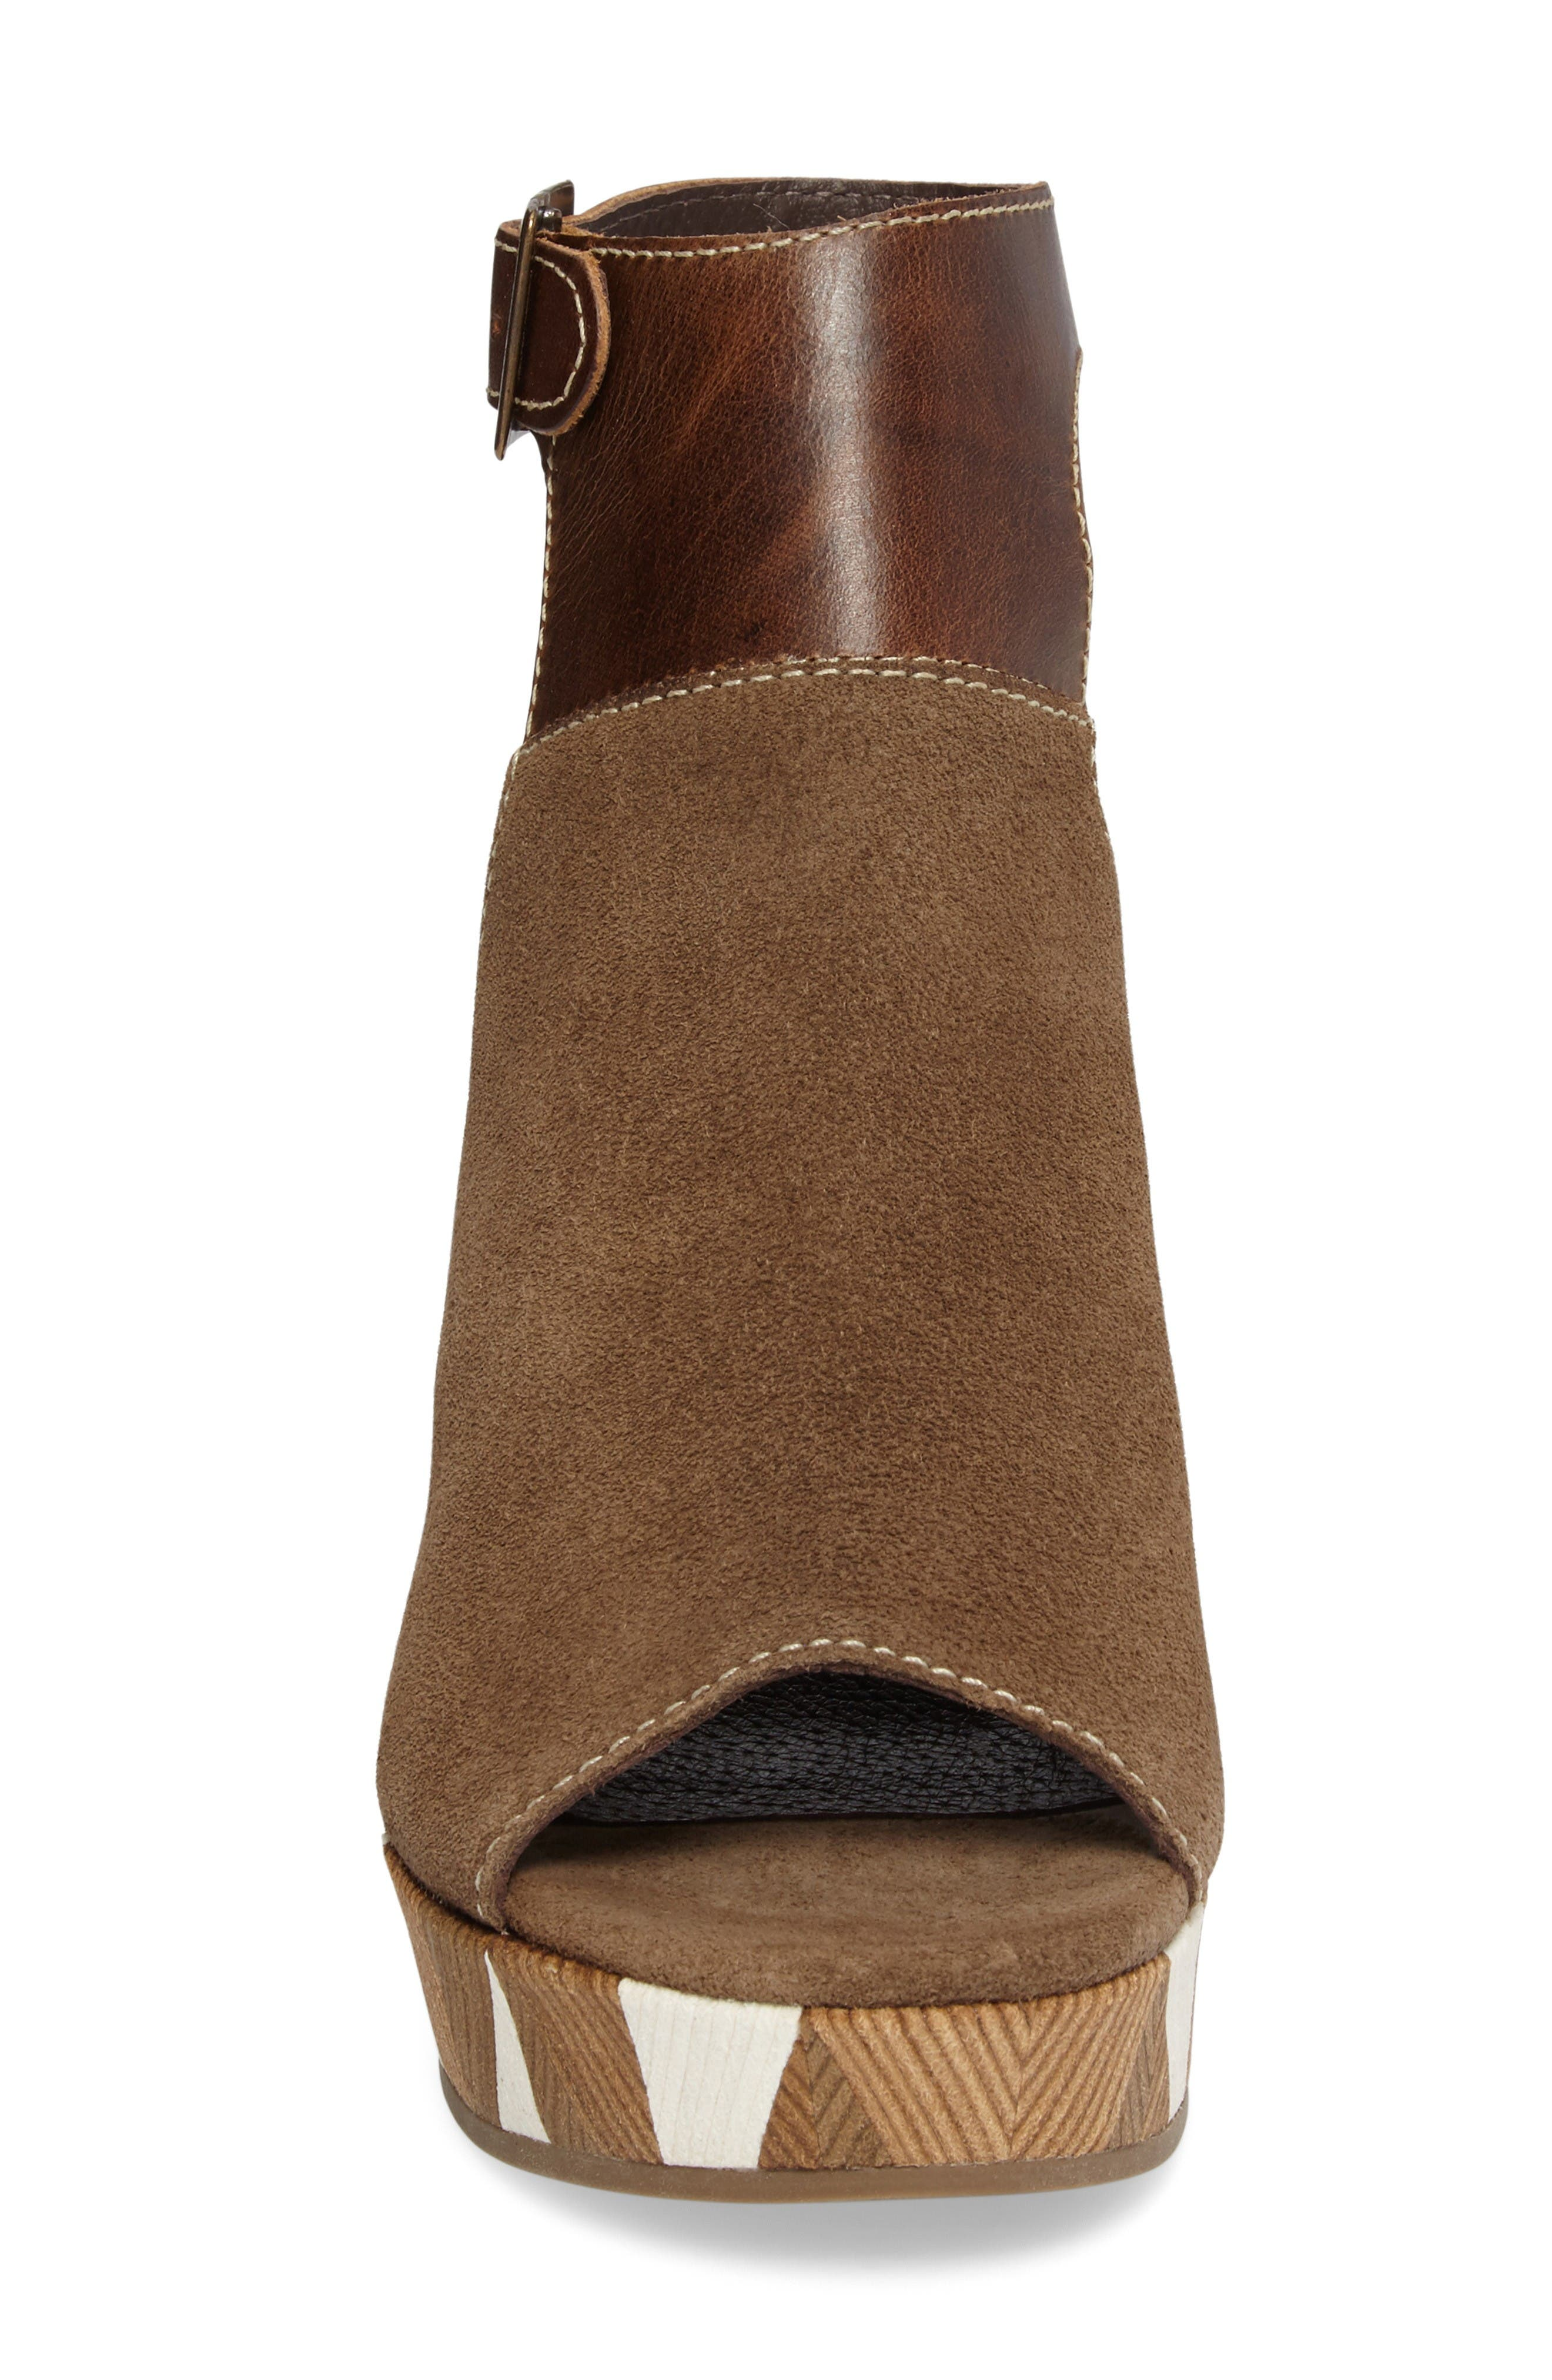 Harlequin Wedge Sandal,                             Alternate thumbnail 3, color,                             Taupe Leather